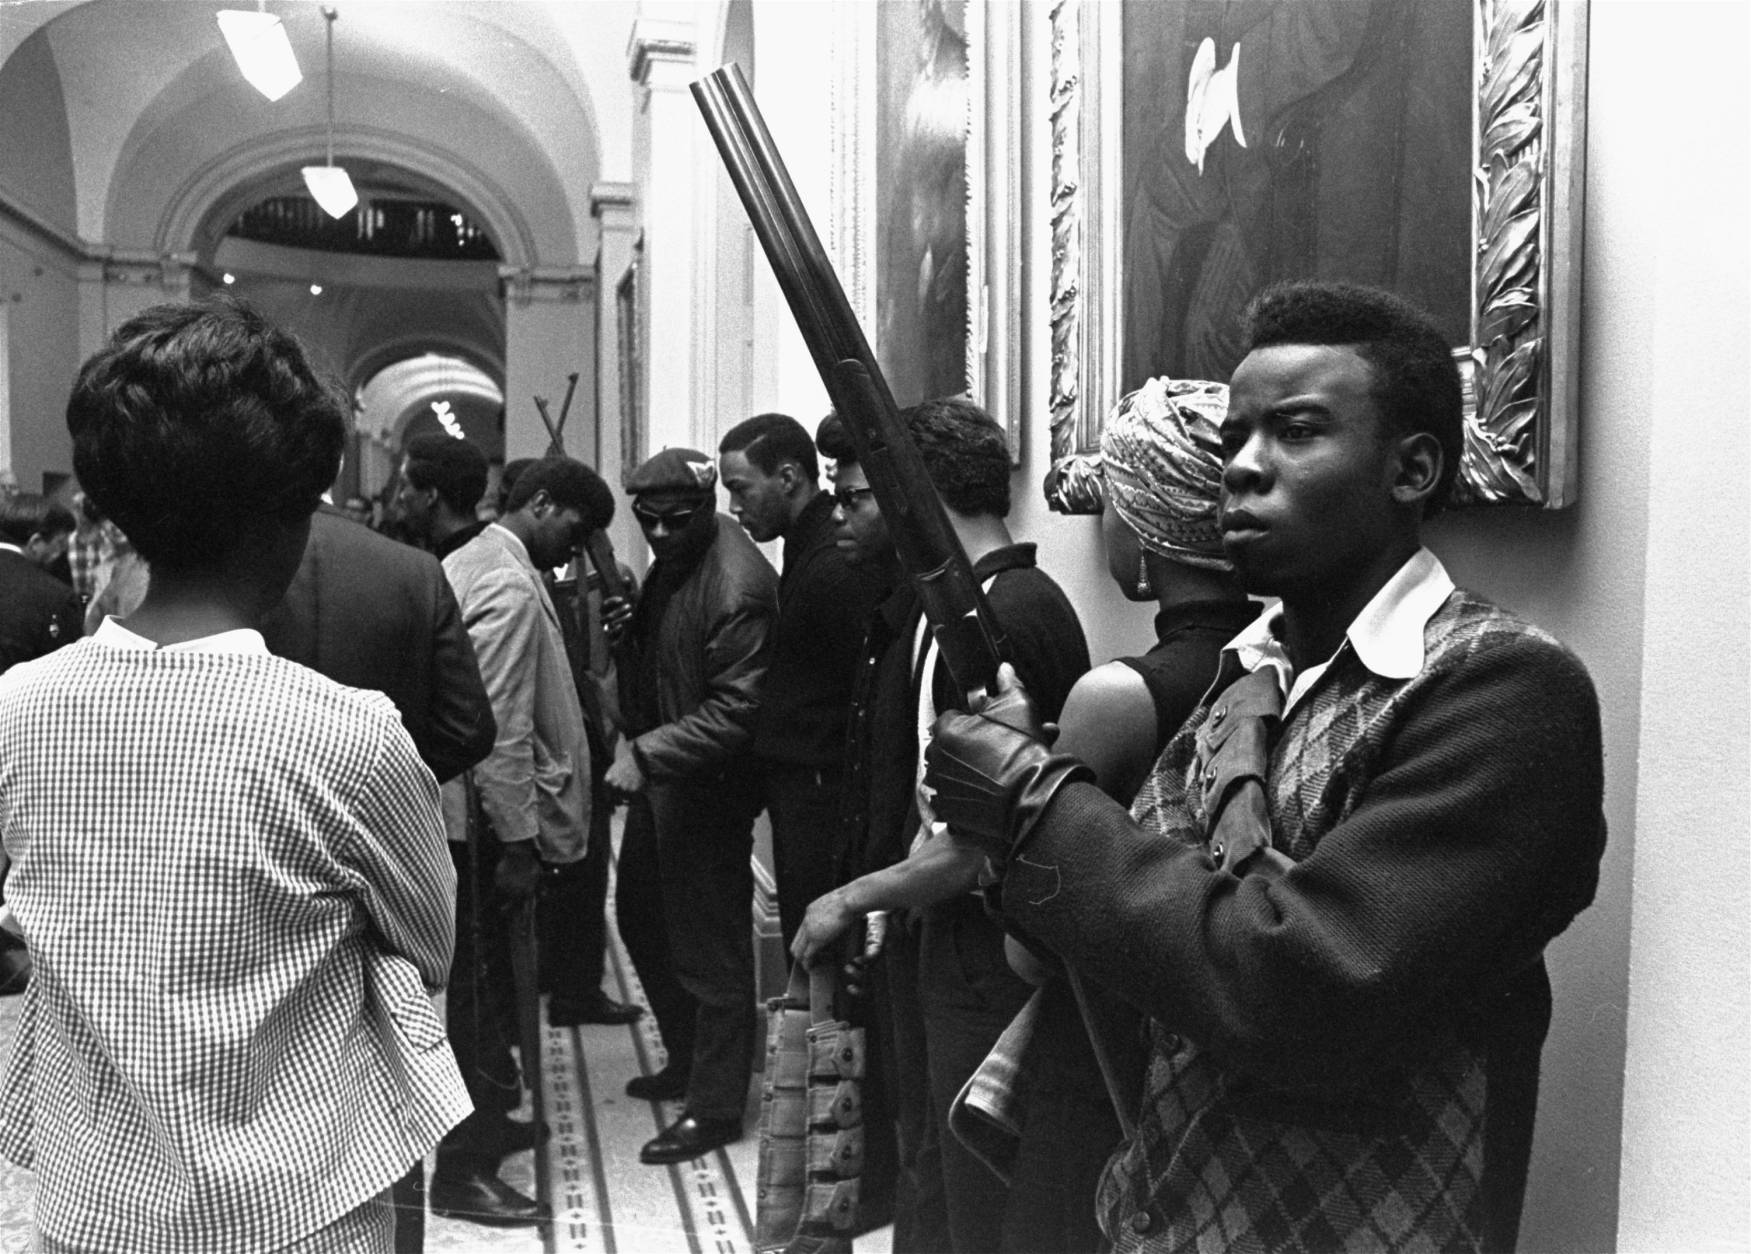 Armed members of the Black Panthers Party stand in the corridor of the Capitol in Sacramento today, May 2, 1967.  They were protesting  a bill before an Assembly committee restricting the carrying of arms in public.  (AP Photo/Walt Zeboski)